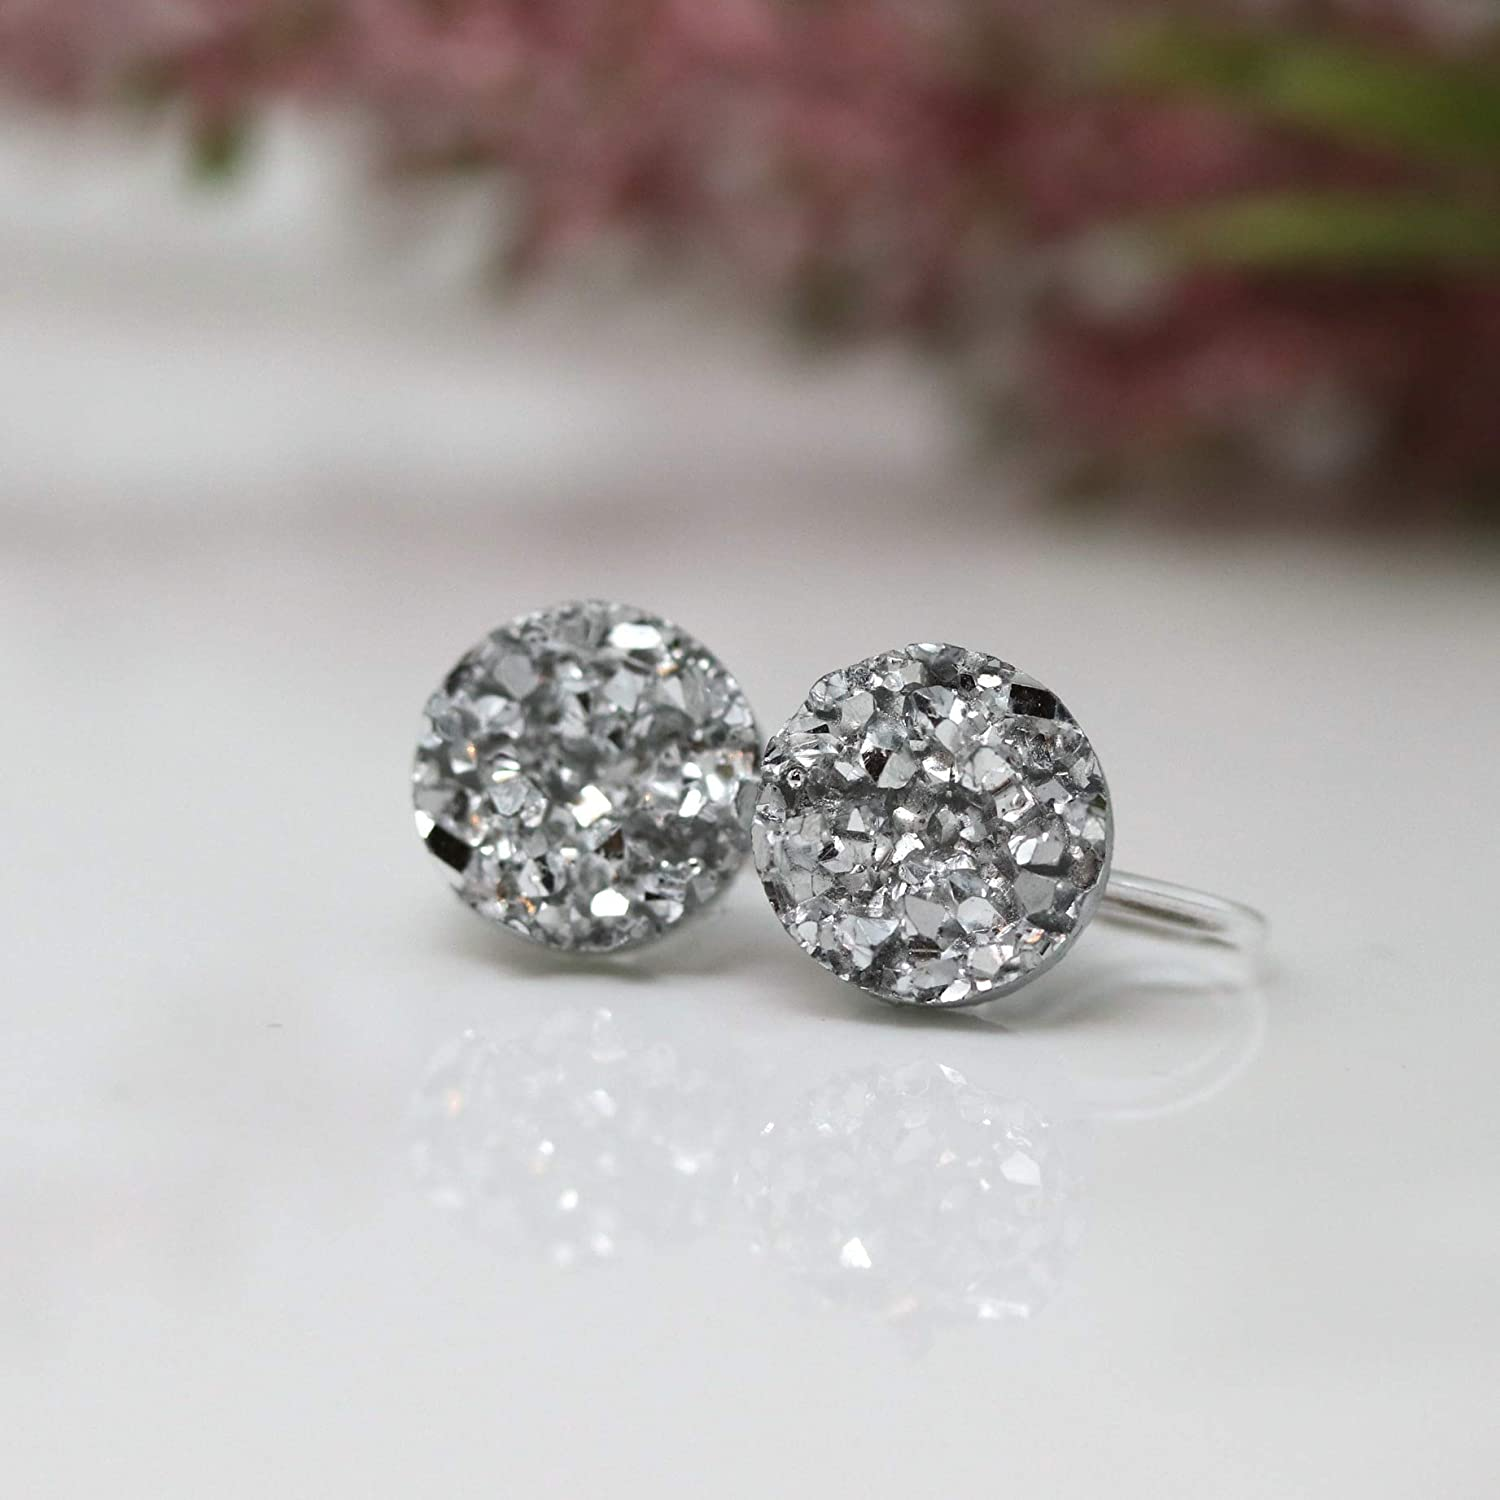 Invisible Clip On Faux Druzy Earrings for Non-Pierced Ears Silver-tone 10mm